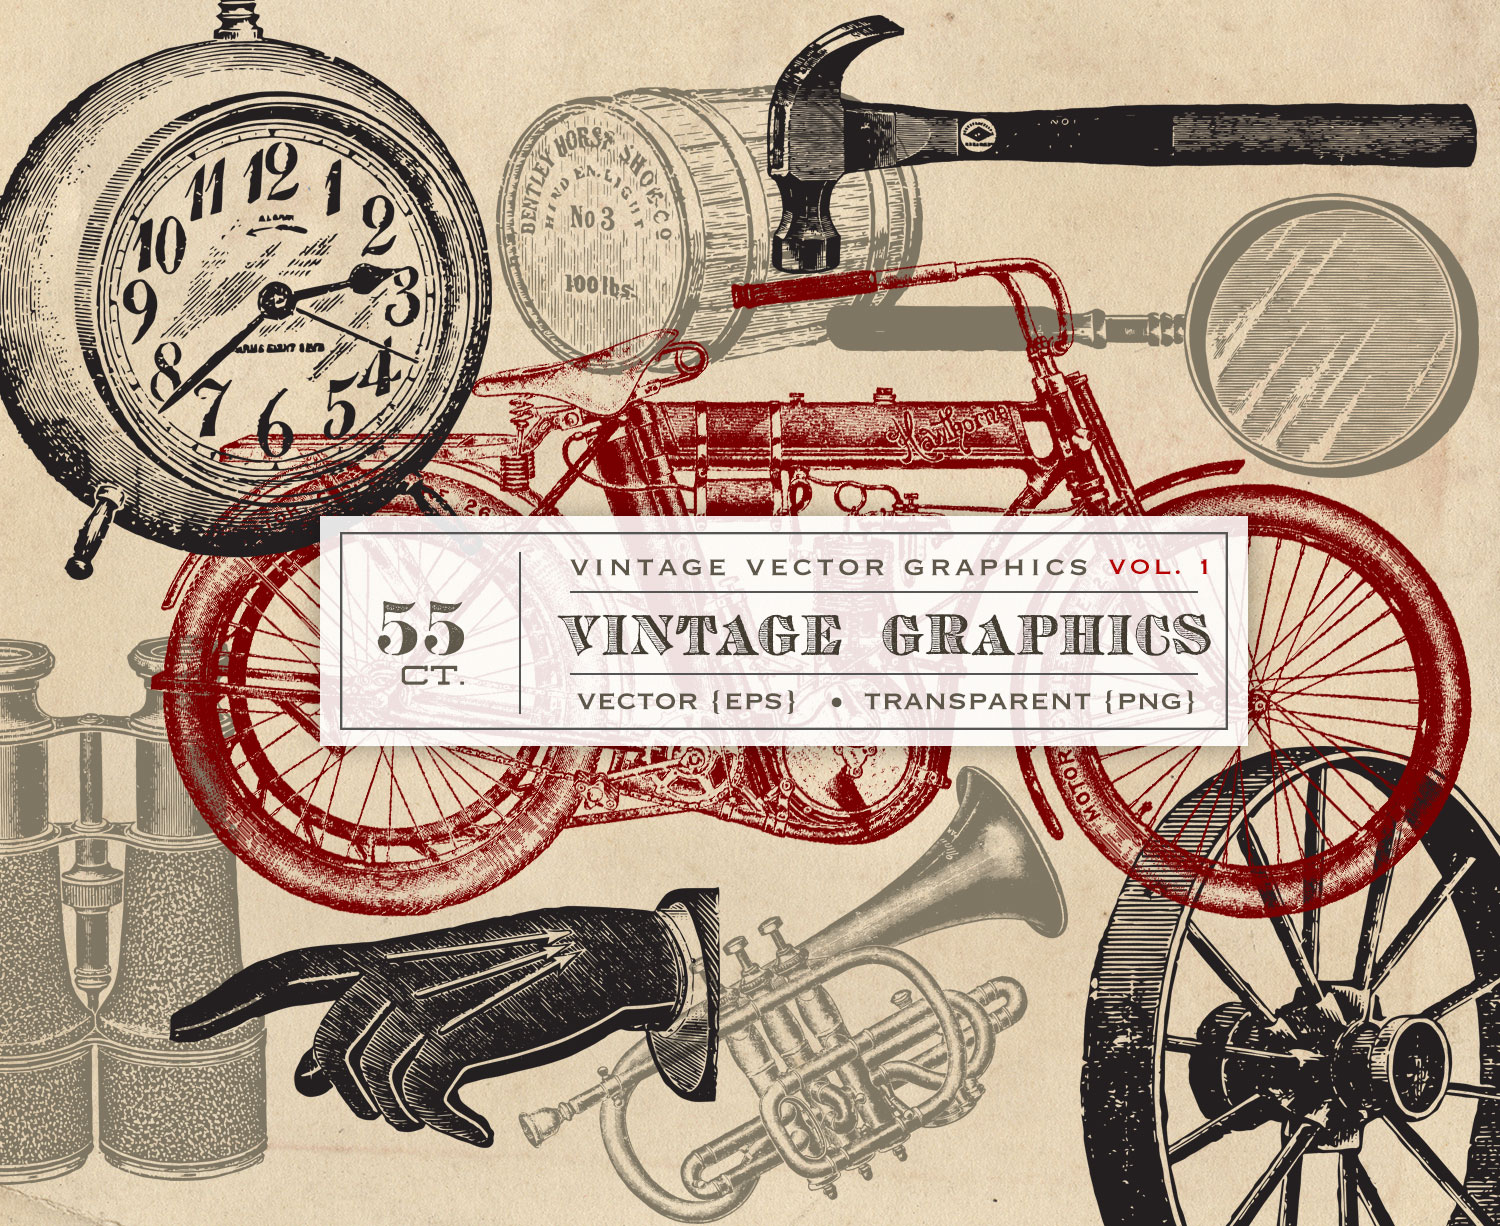 55-vintage-graphics-top-image